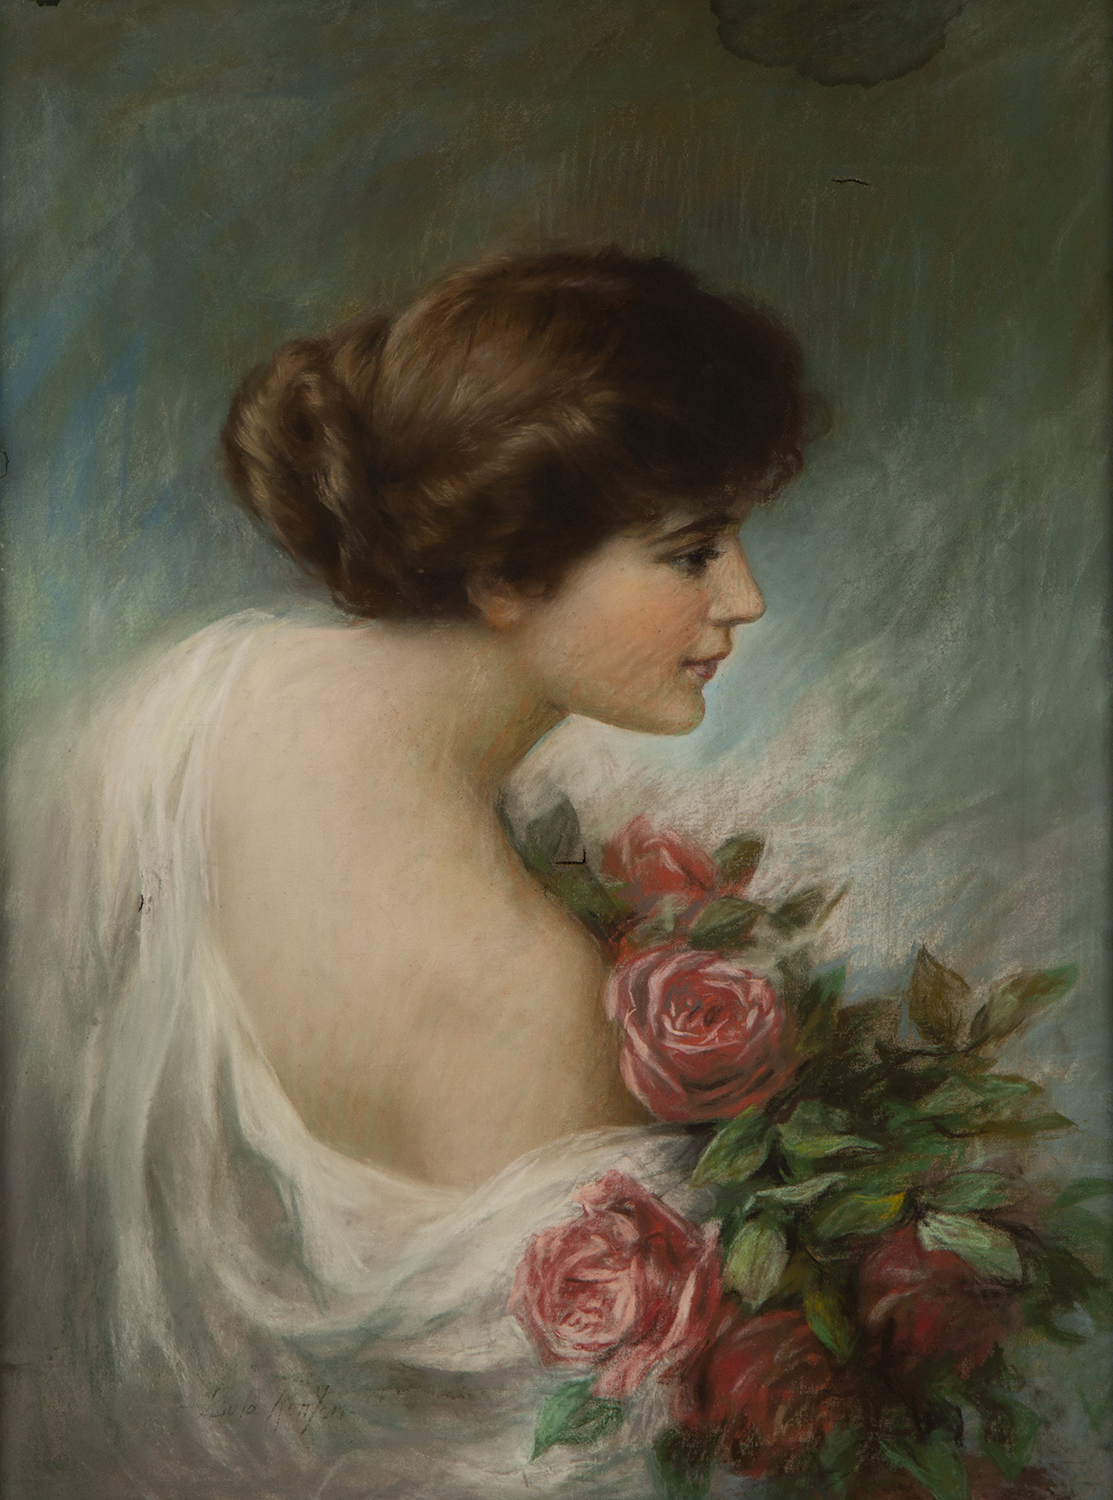 Full view of pastel on canvas illustration by Zula Kenyon featuring a brunette woman from the side and holding a bouquet of roses